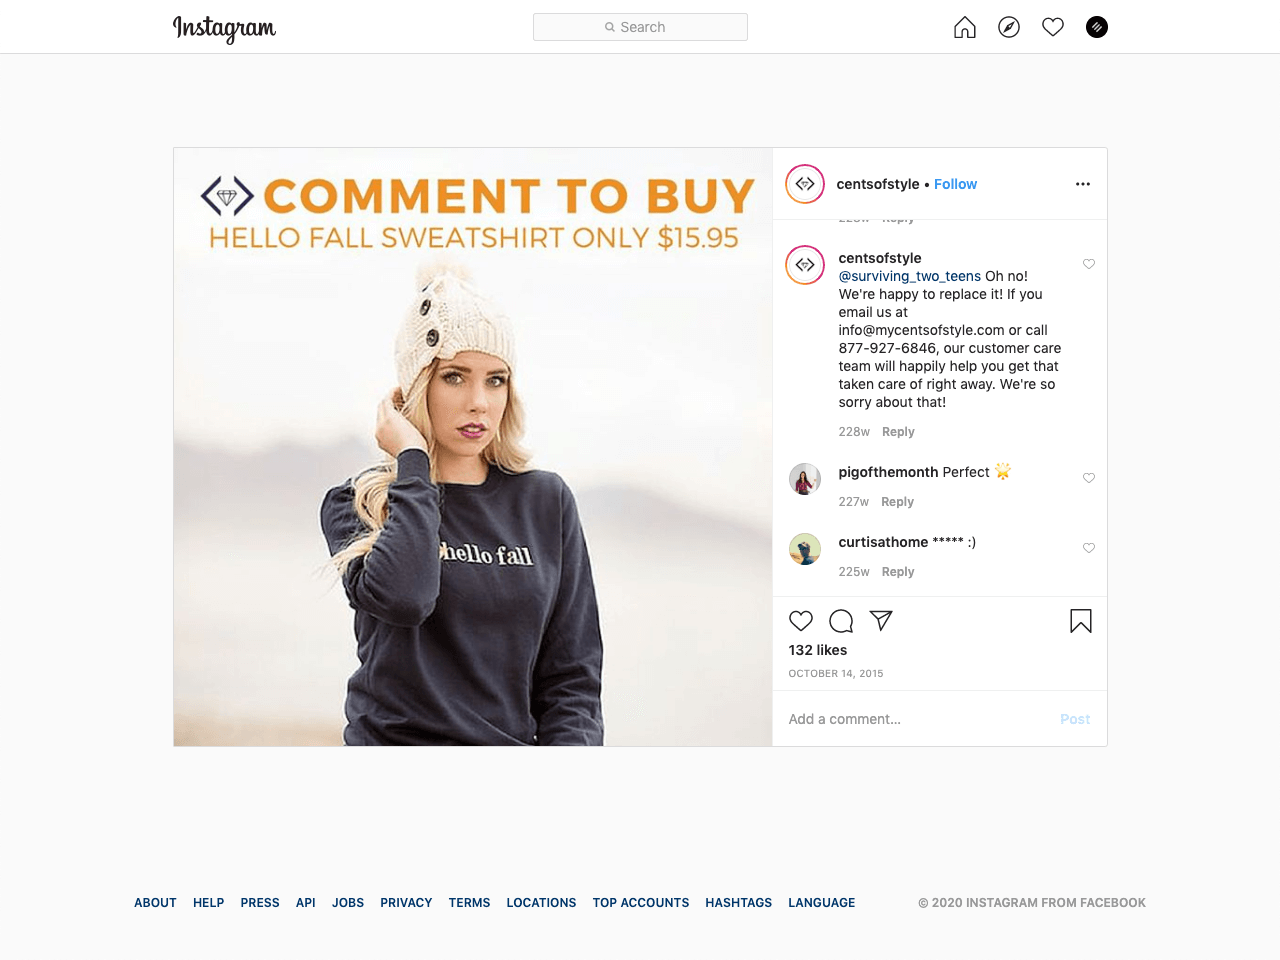 How to sell apparel on Instagram using the comments section